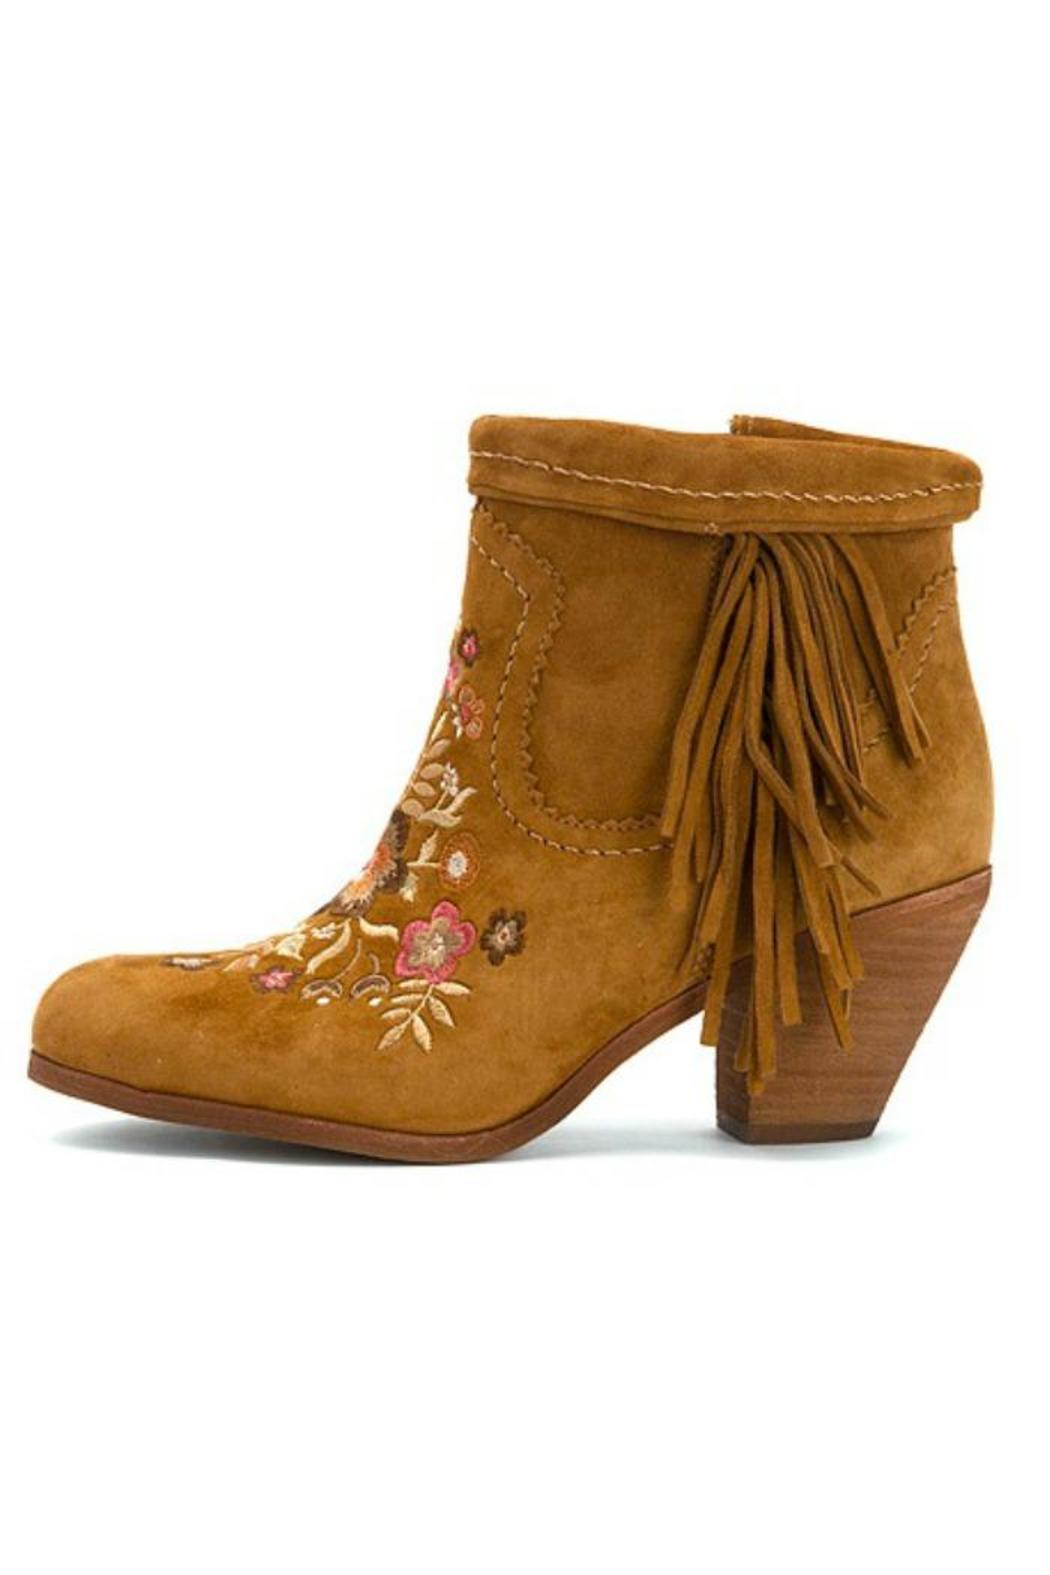 881069efb763 Sam Edelman Fringe Tan Bootie from Williamsburg by The Shoe Attic ...